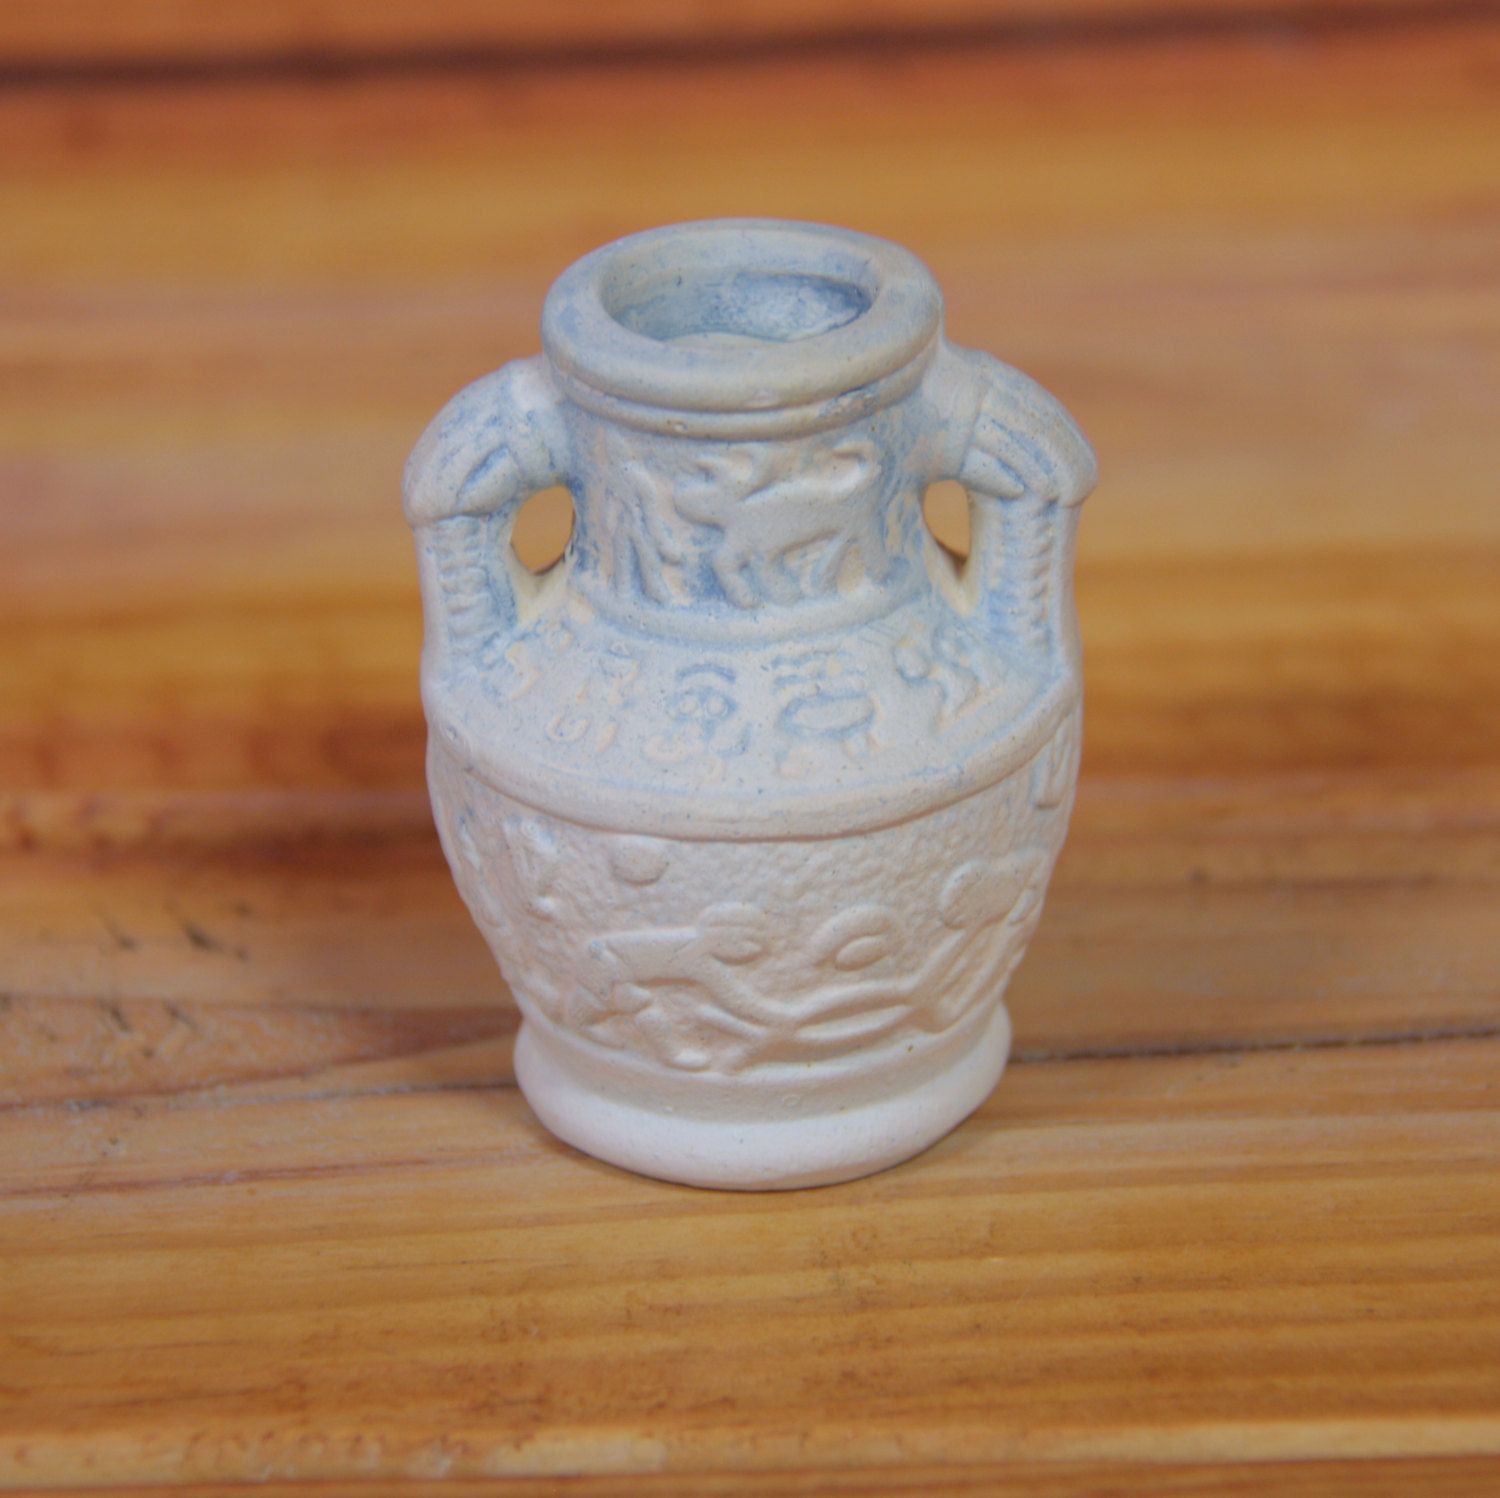 29 Fashionable Japanese Floor Vase 2021 free download japanese floor vase of 26 lenox small vase the weekly world pertaining to occupied japan small vase box 203